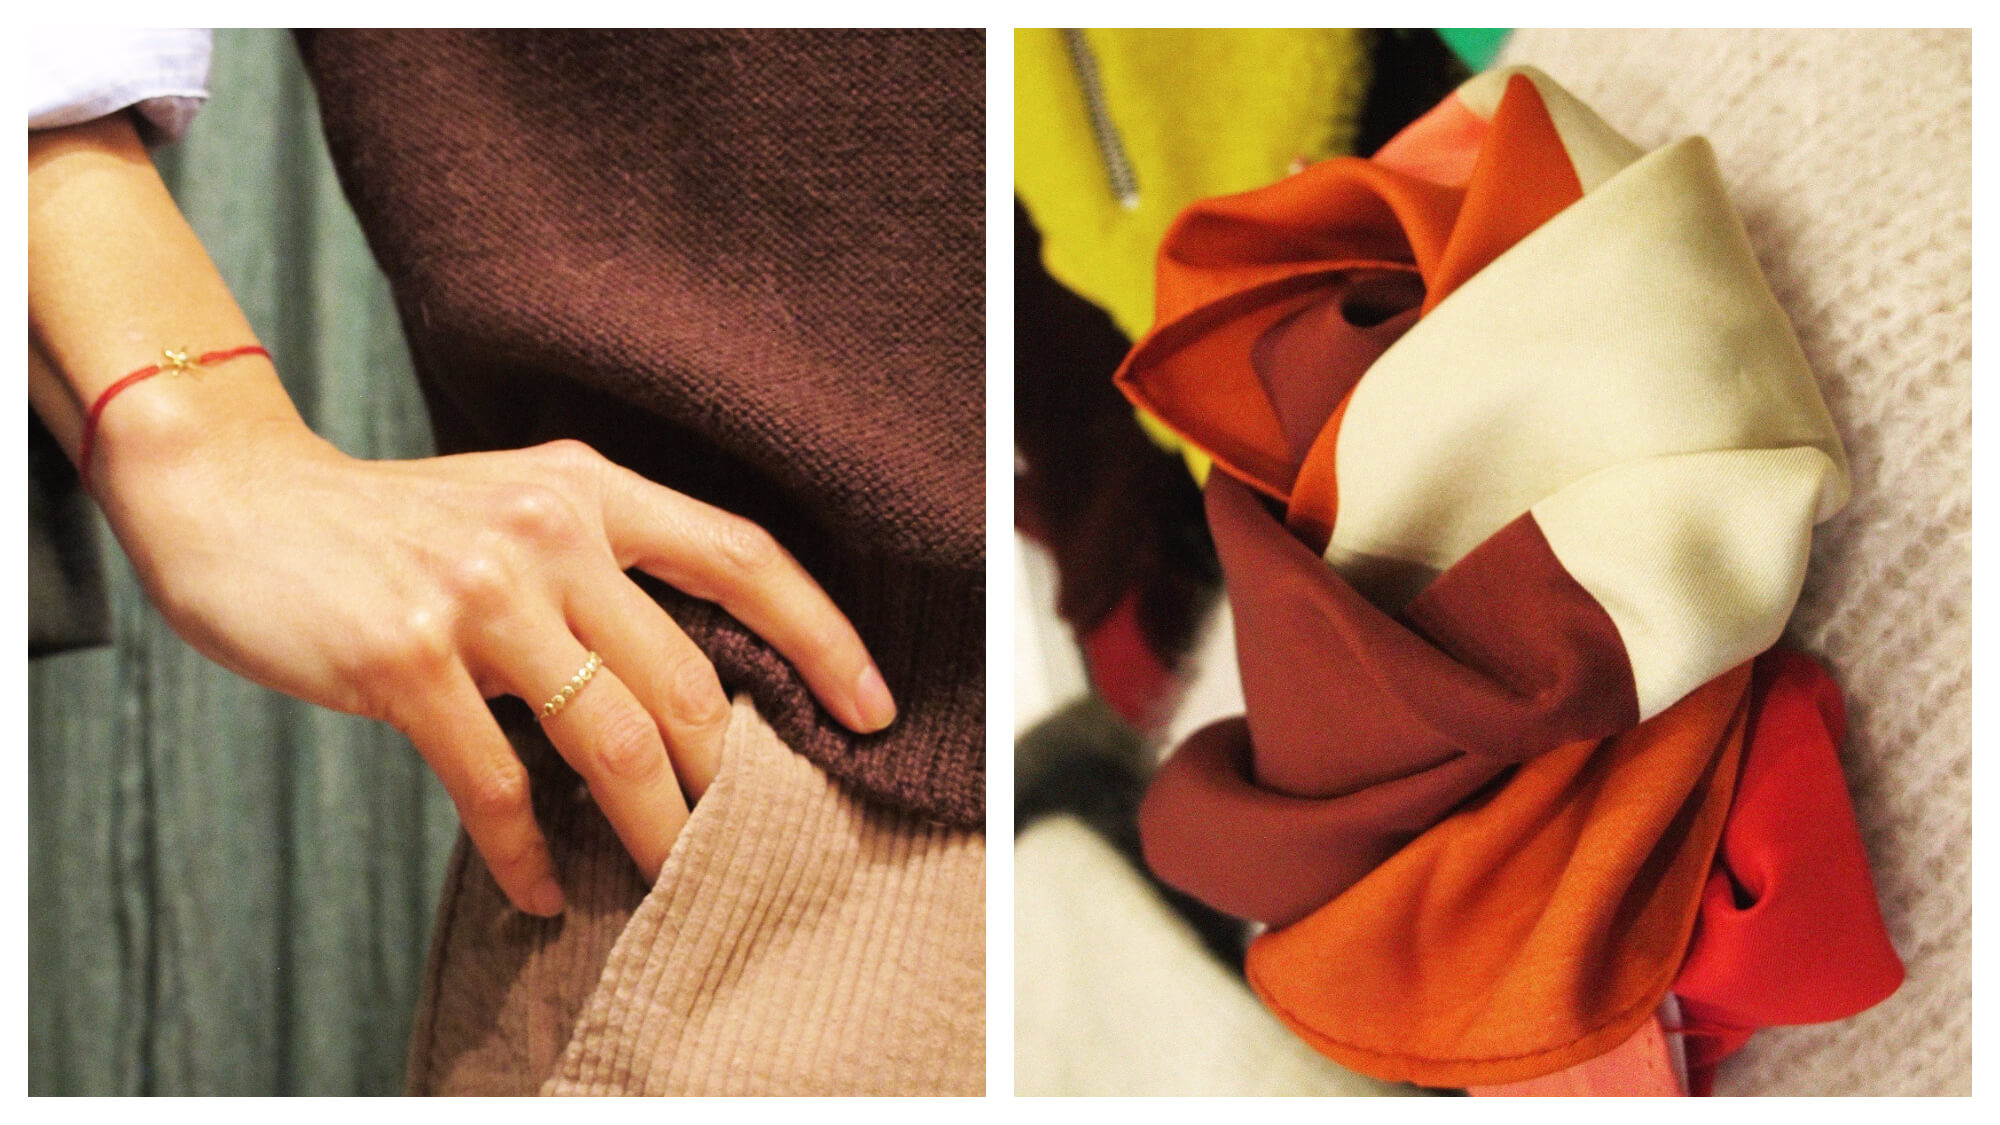 Left: a close up of a woman's hand on her hip. She's wearing a delicate gold ring on one finger and a string bracelet with a gold pendant. She's wearing a pale blue shirt with the sleeve rolled up, a brown knit jumper and camel corduroy pants. Right: a close up of a brown, orange, red and cream scarf knotted and sitting on a cream knit.